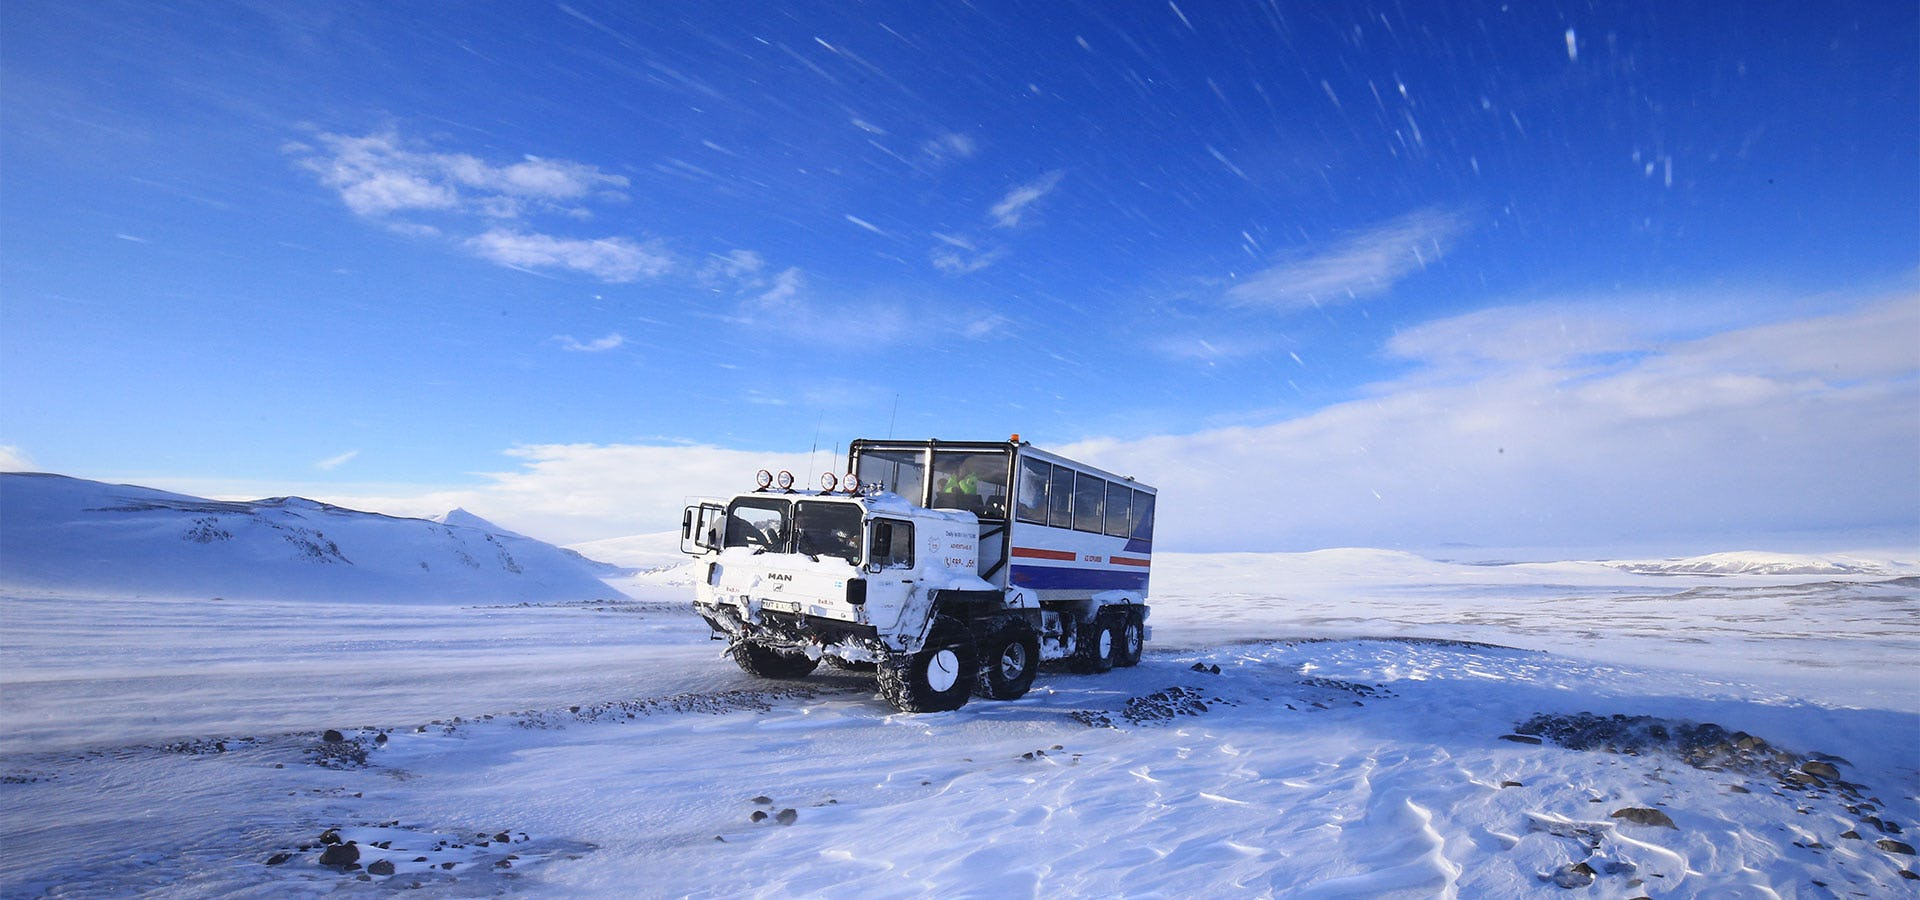 When venturing up Langjökull glacier to enter its Ice Tunnel, you need to get there in the proper vehicle.